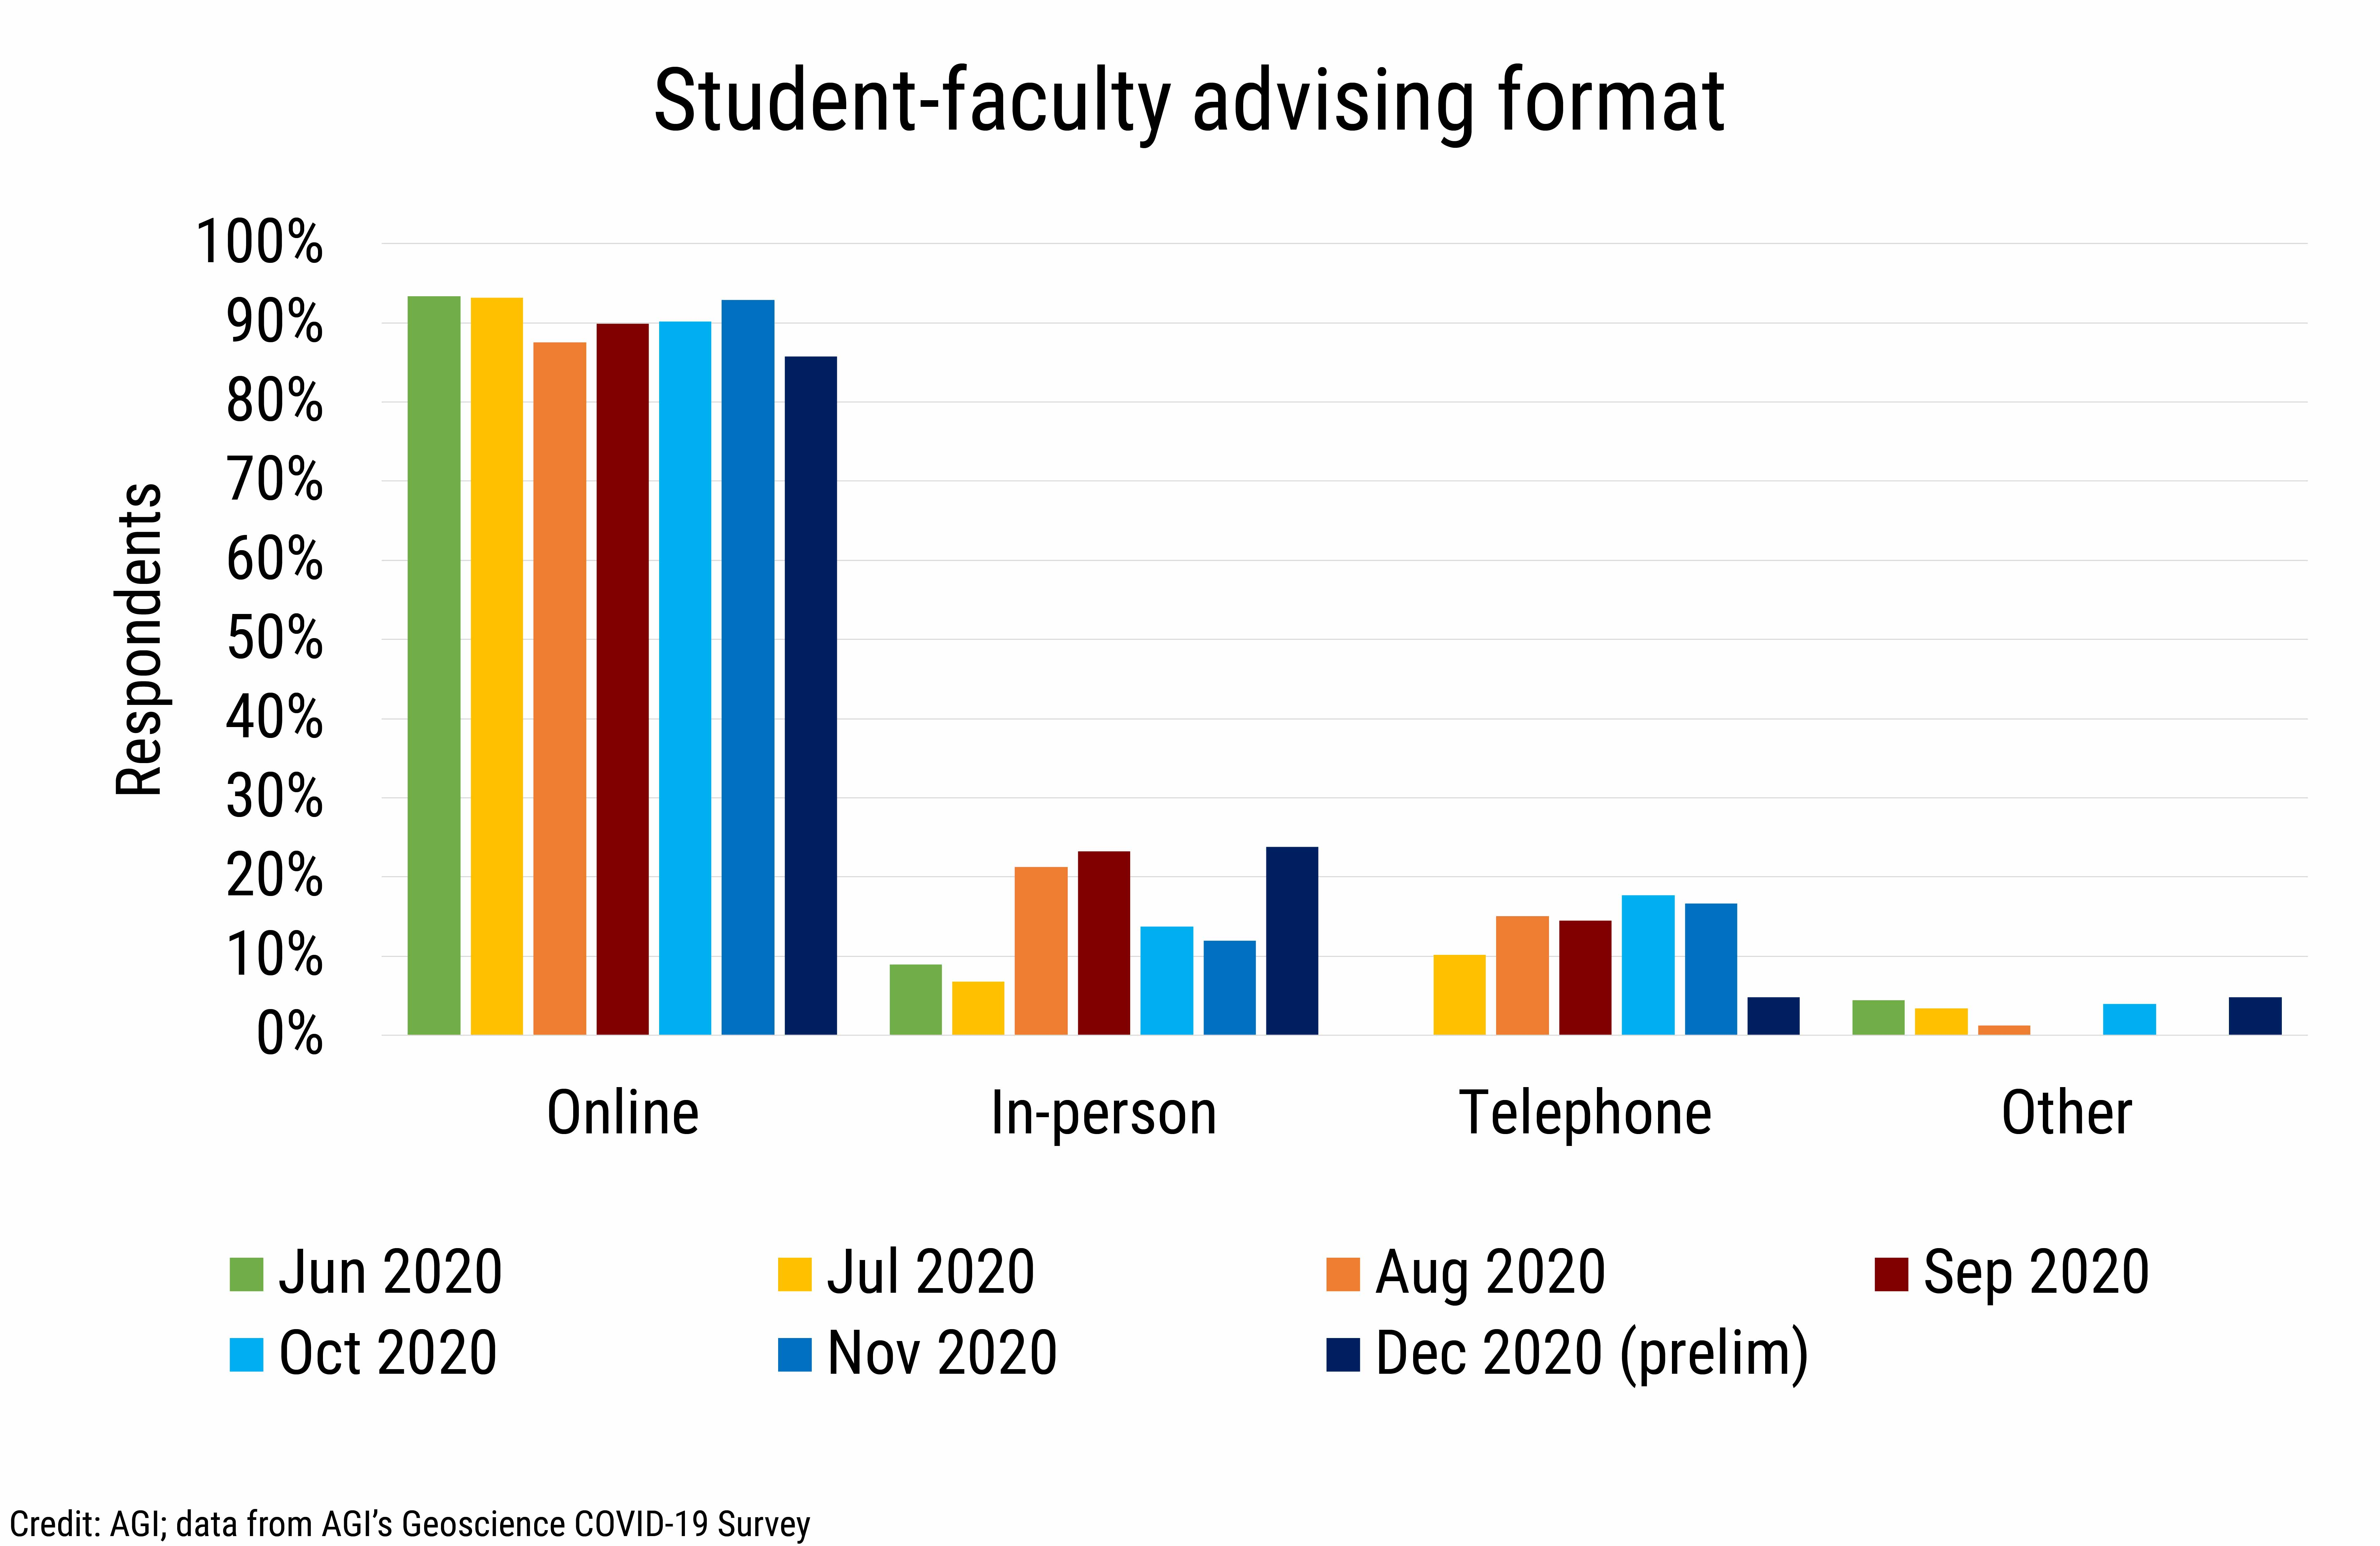 DB_2020-032 chart 04: Student-faculty advising format (Credit: AGI; data from AGI's Geoscience COVID-19 Survey)